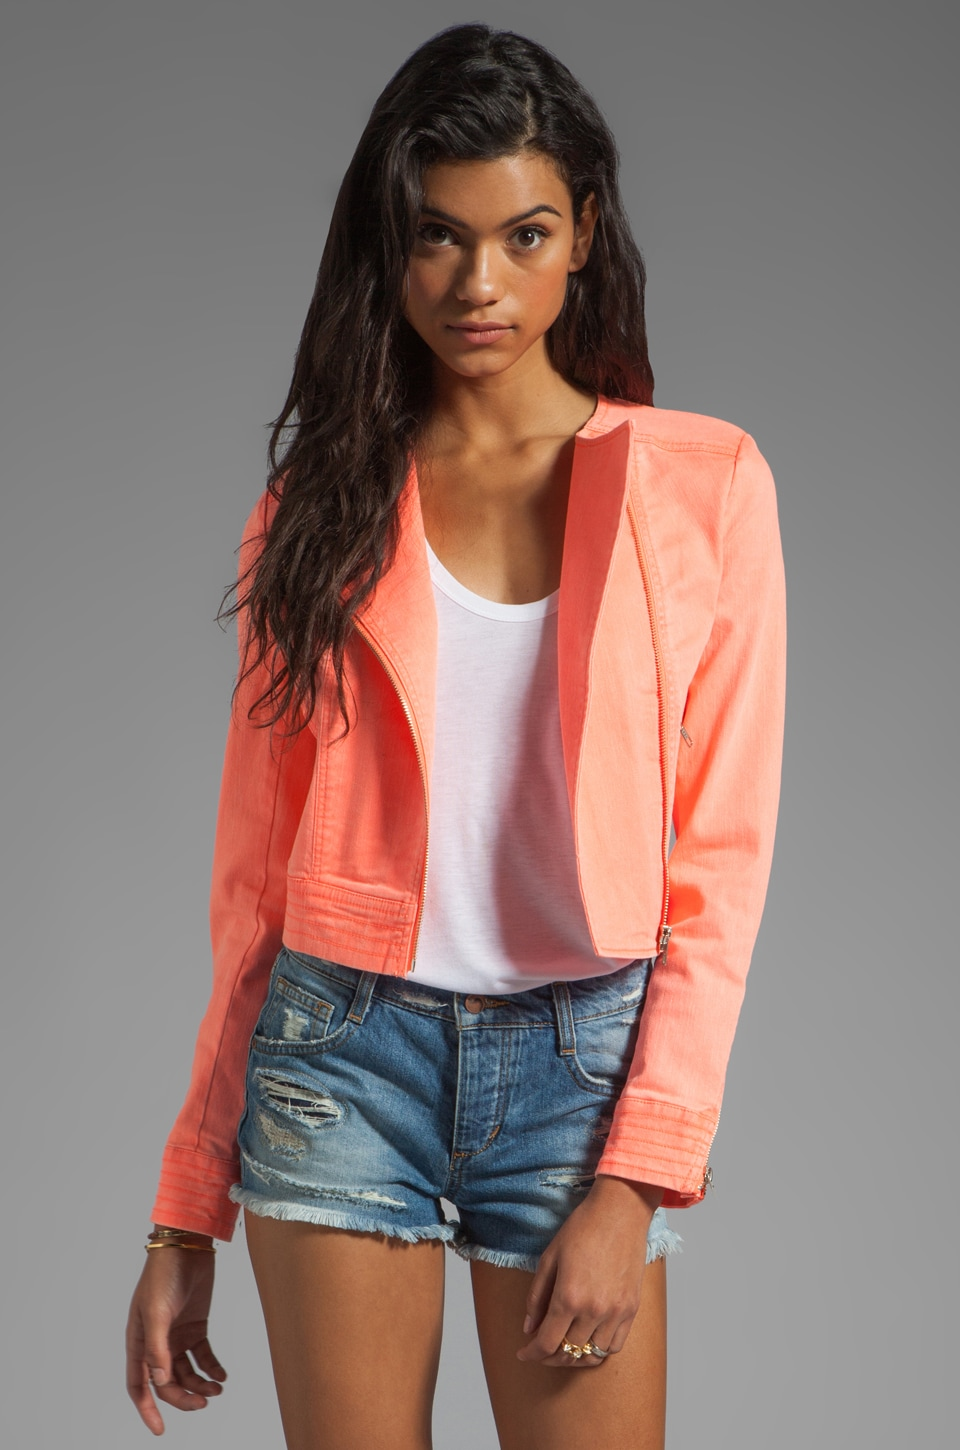 Finders Keepers Speak to Me Jacket in Sherbert